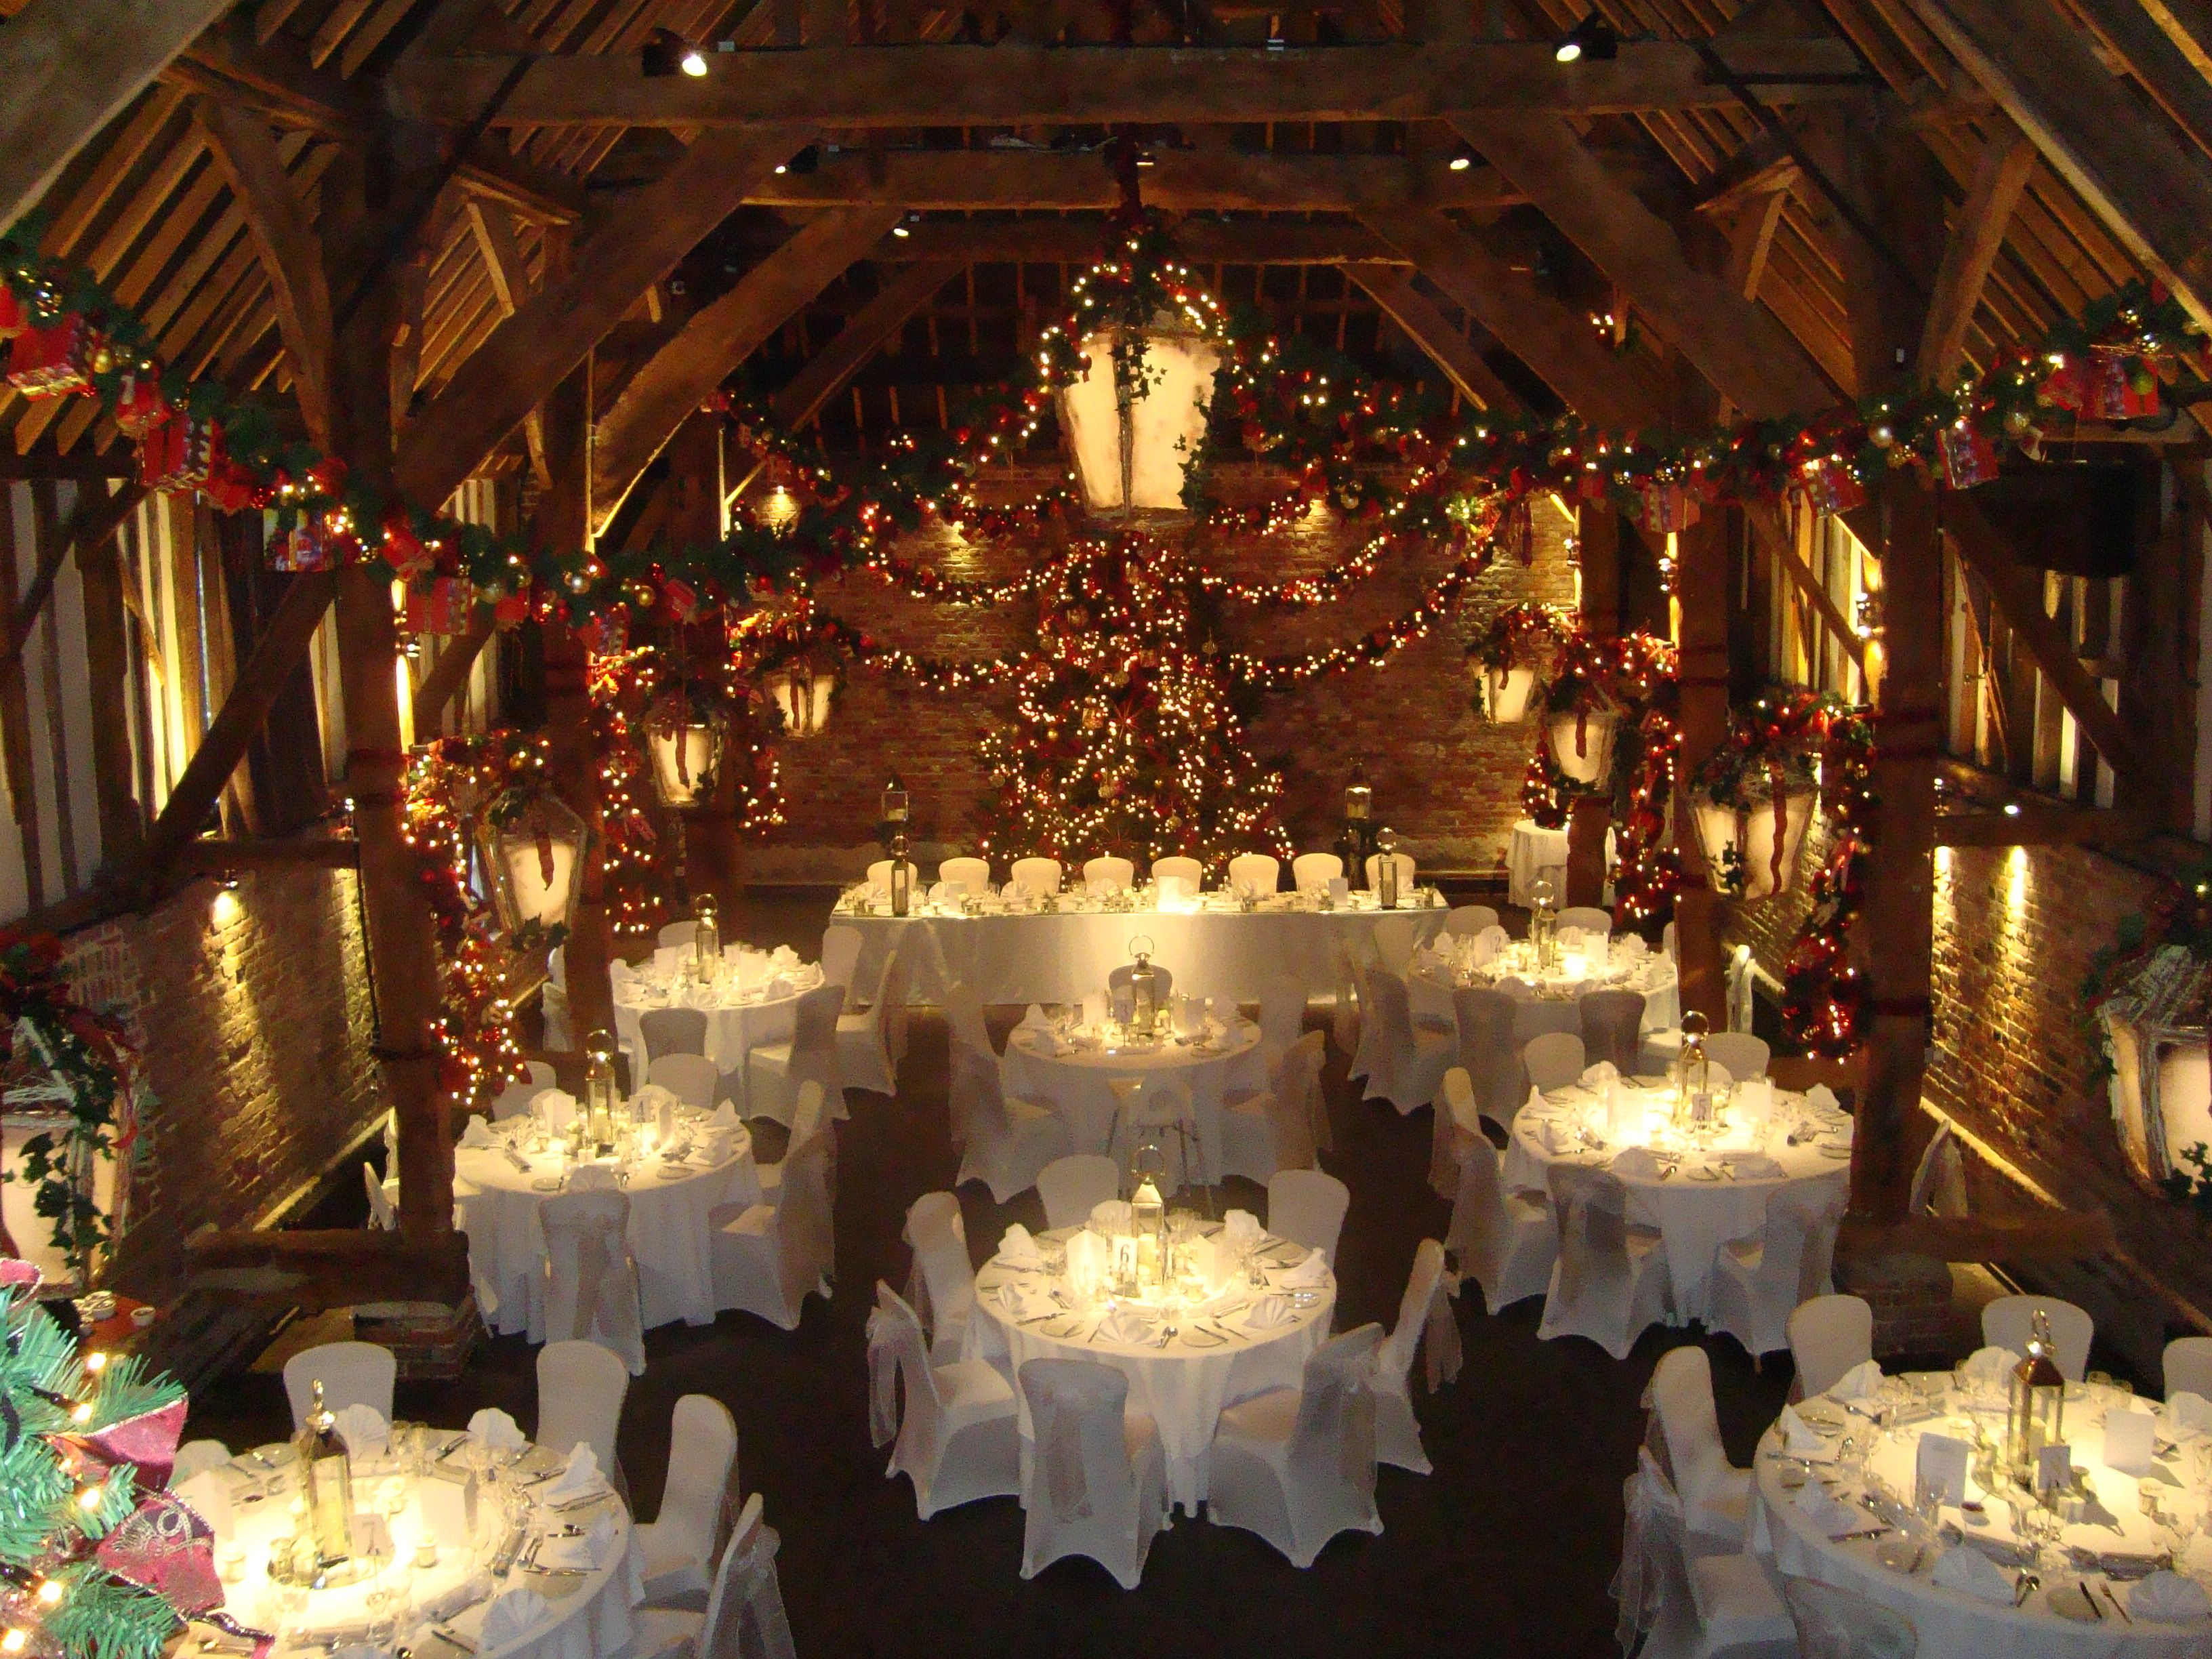 The tithe barn decorated for christmas wedding venue in kent the tithe barn decorated for christmas wedding venue in kent junglespirit Choice Image